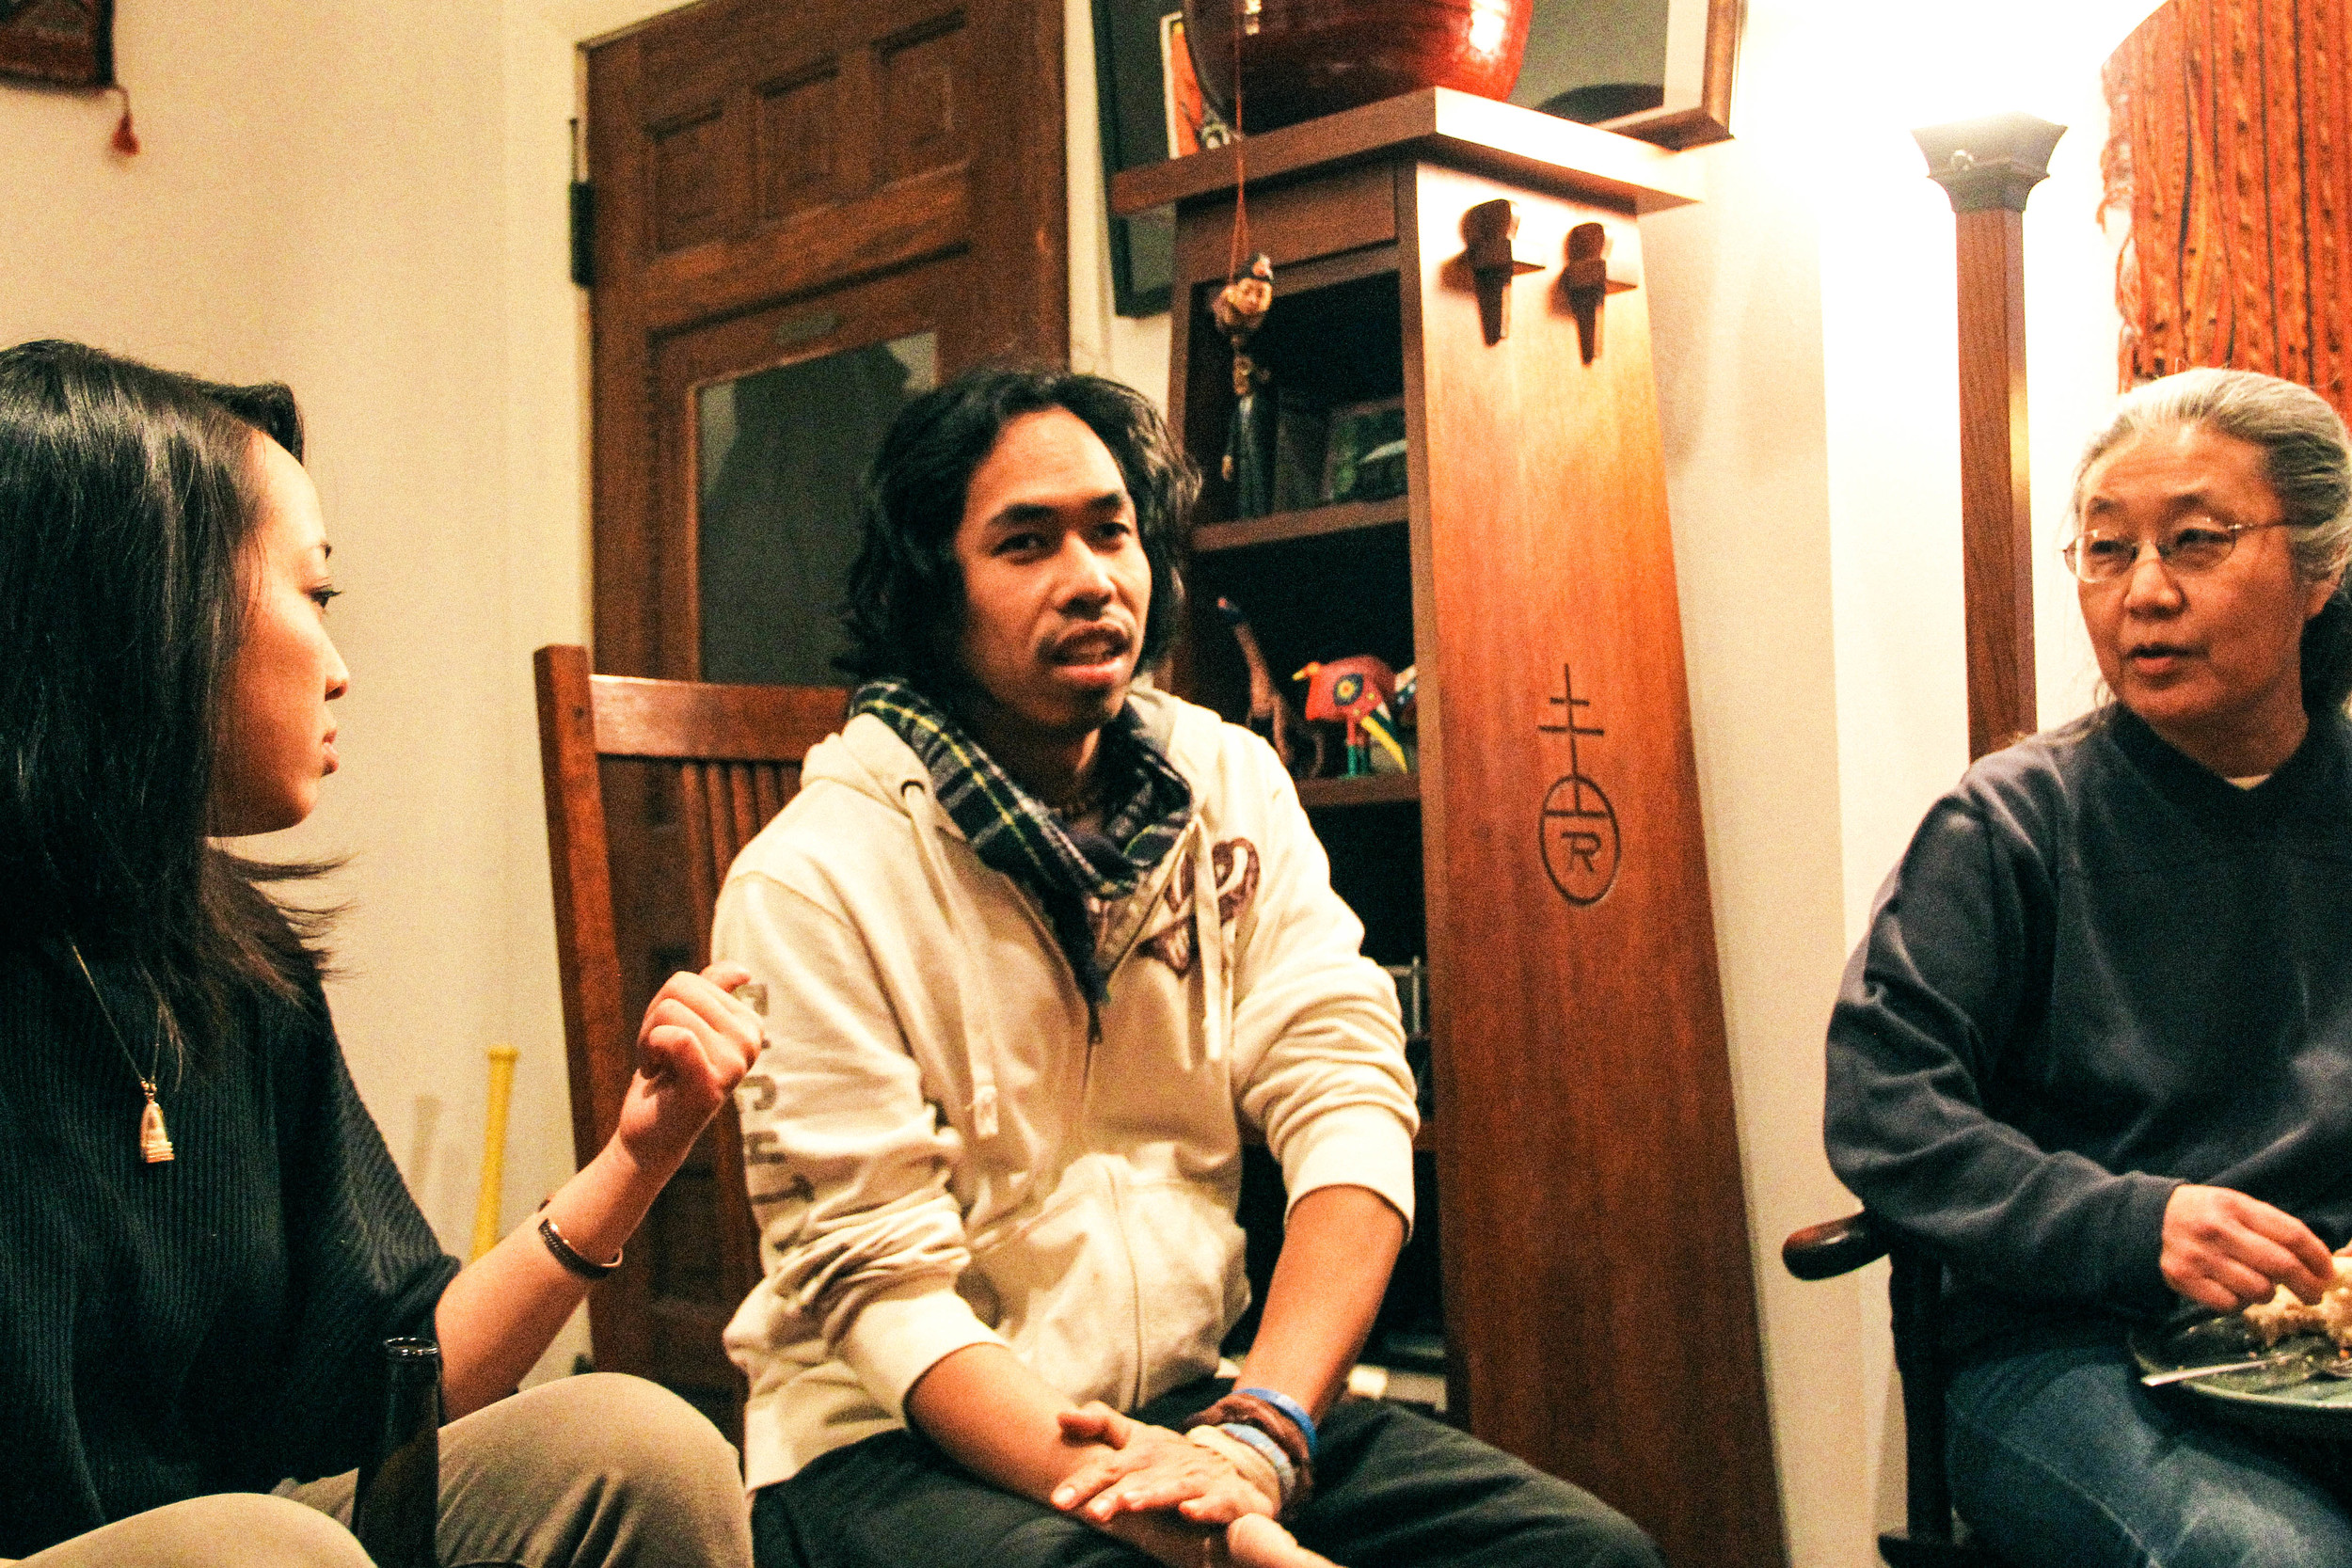 Kaoru Watanabe (right) sharing her stories and perspectives with peace fellows Alina (left)and Johnny (middle).